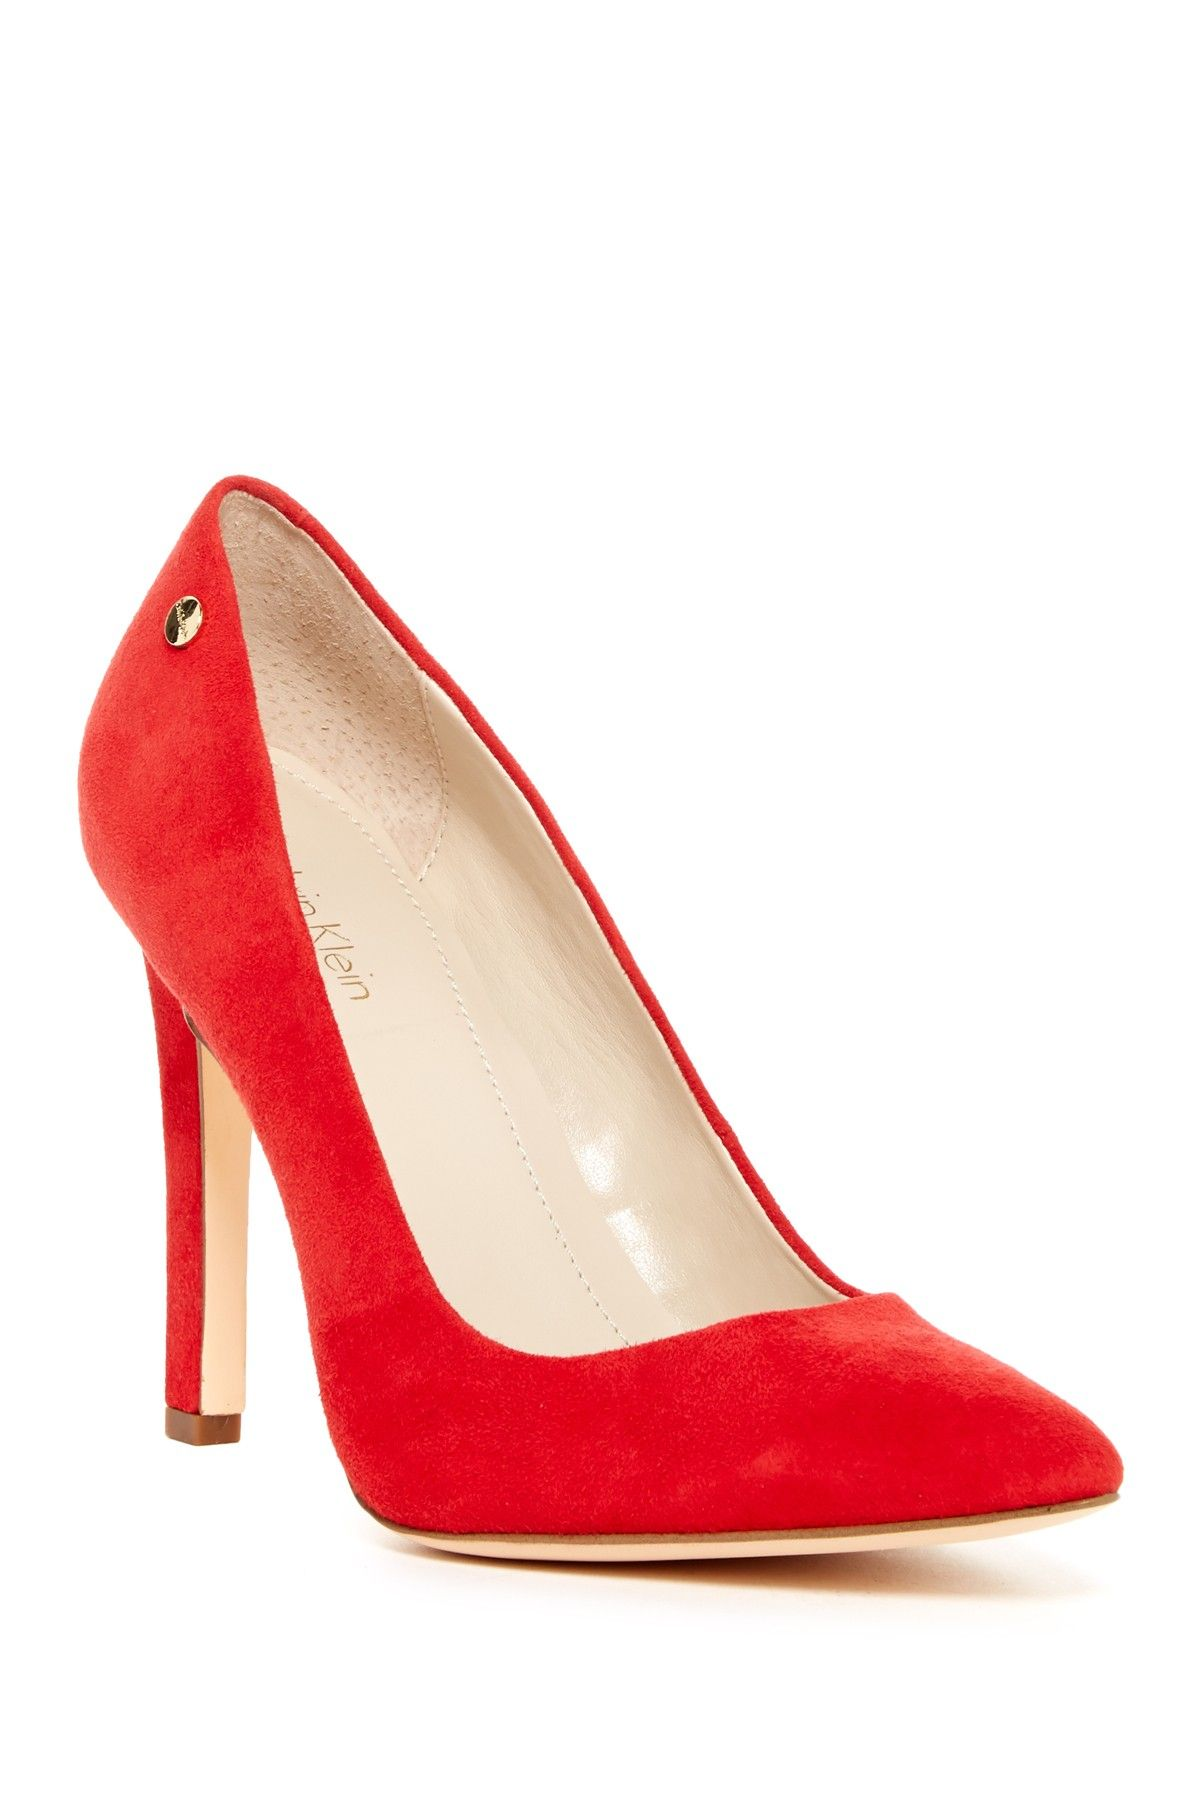 566a575e08b Brady Suede Pointed Toe Pump - Wide Width Available by Calvin Klein on   nordstrom rack